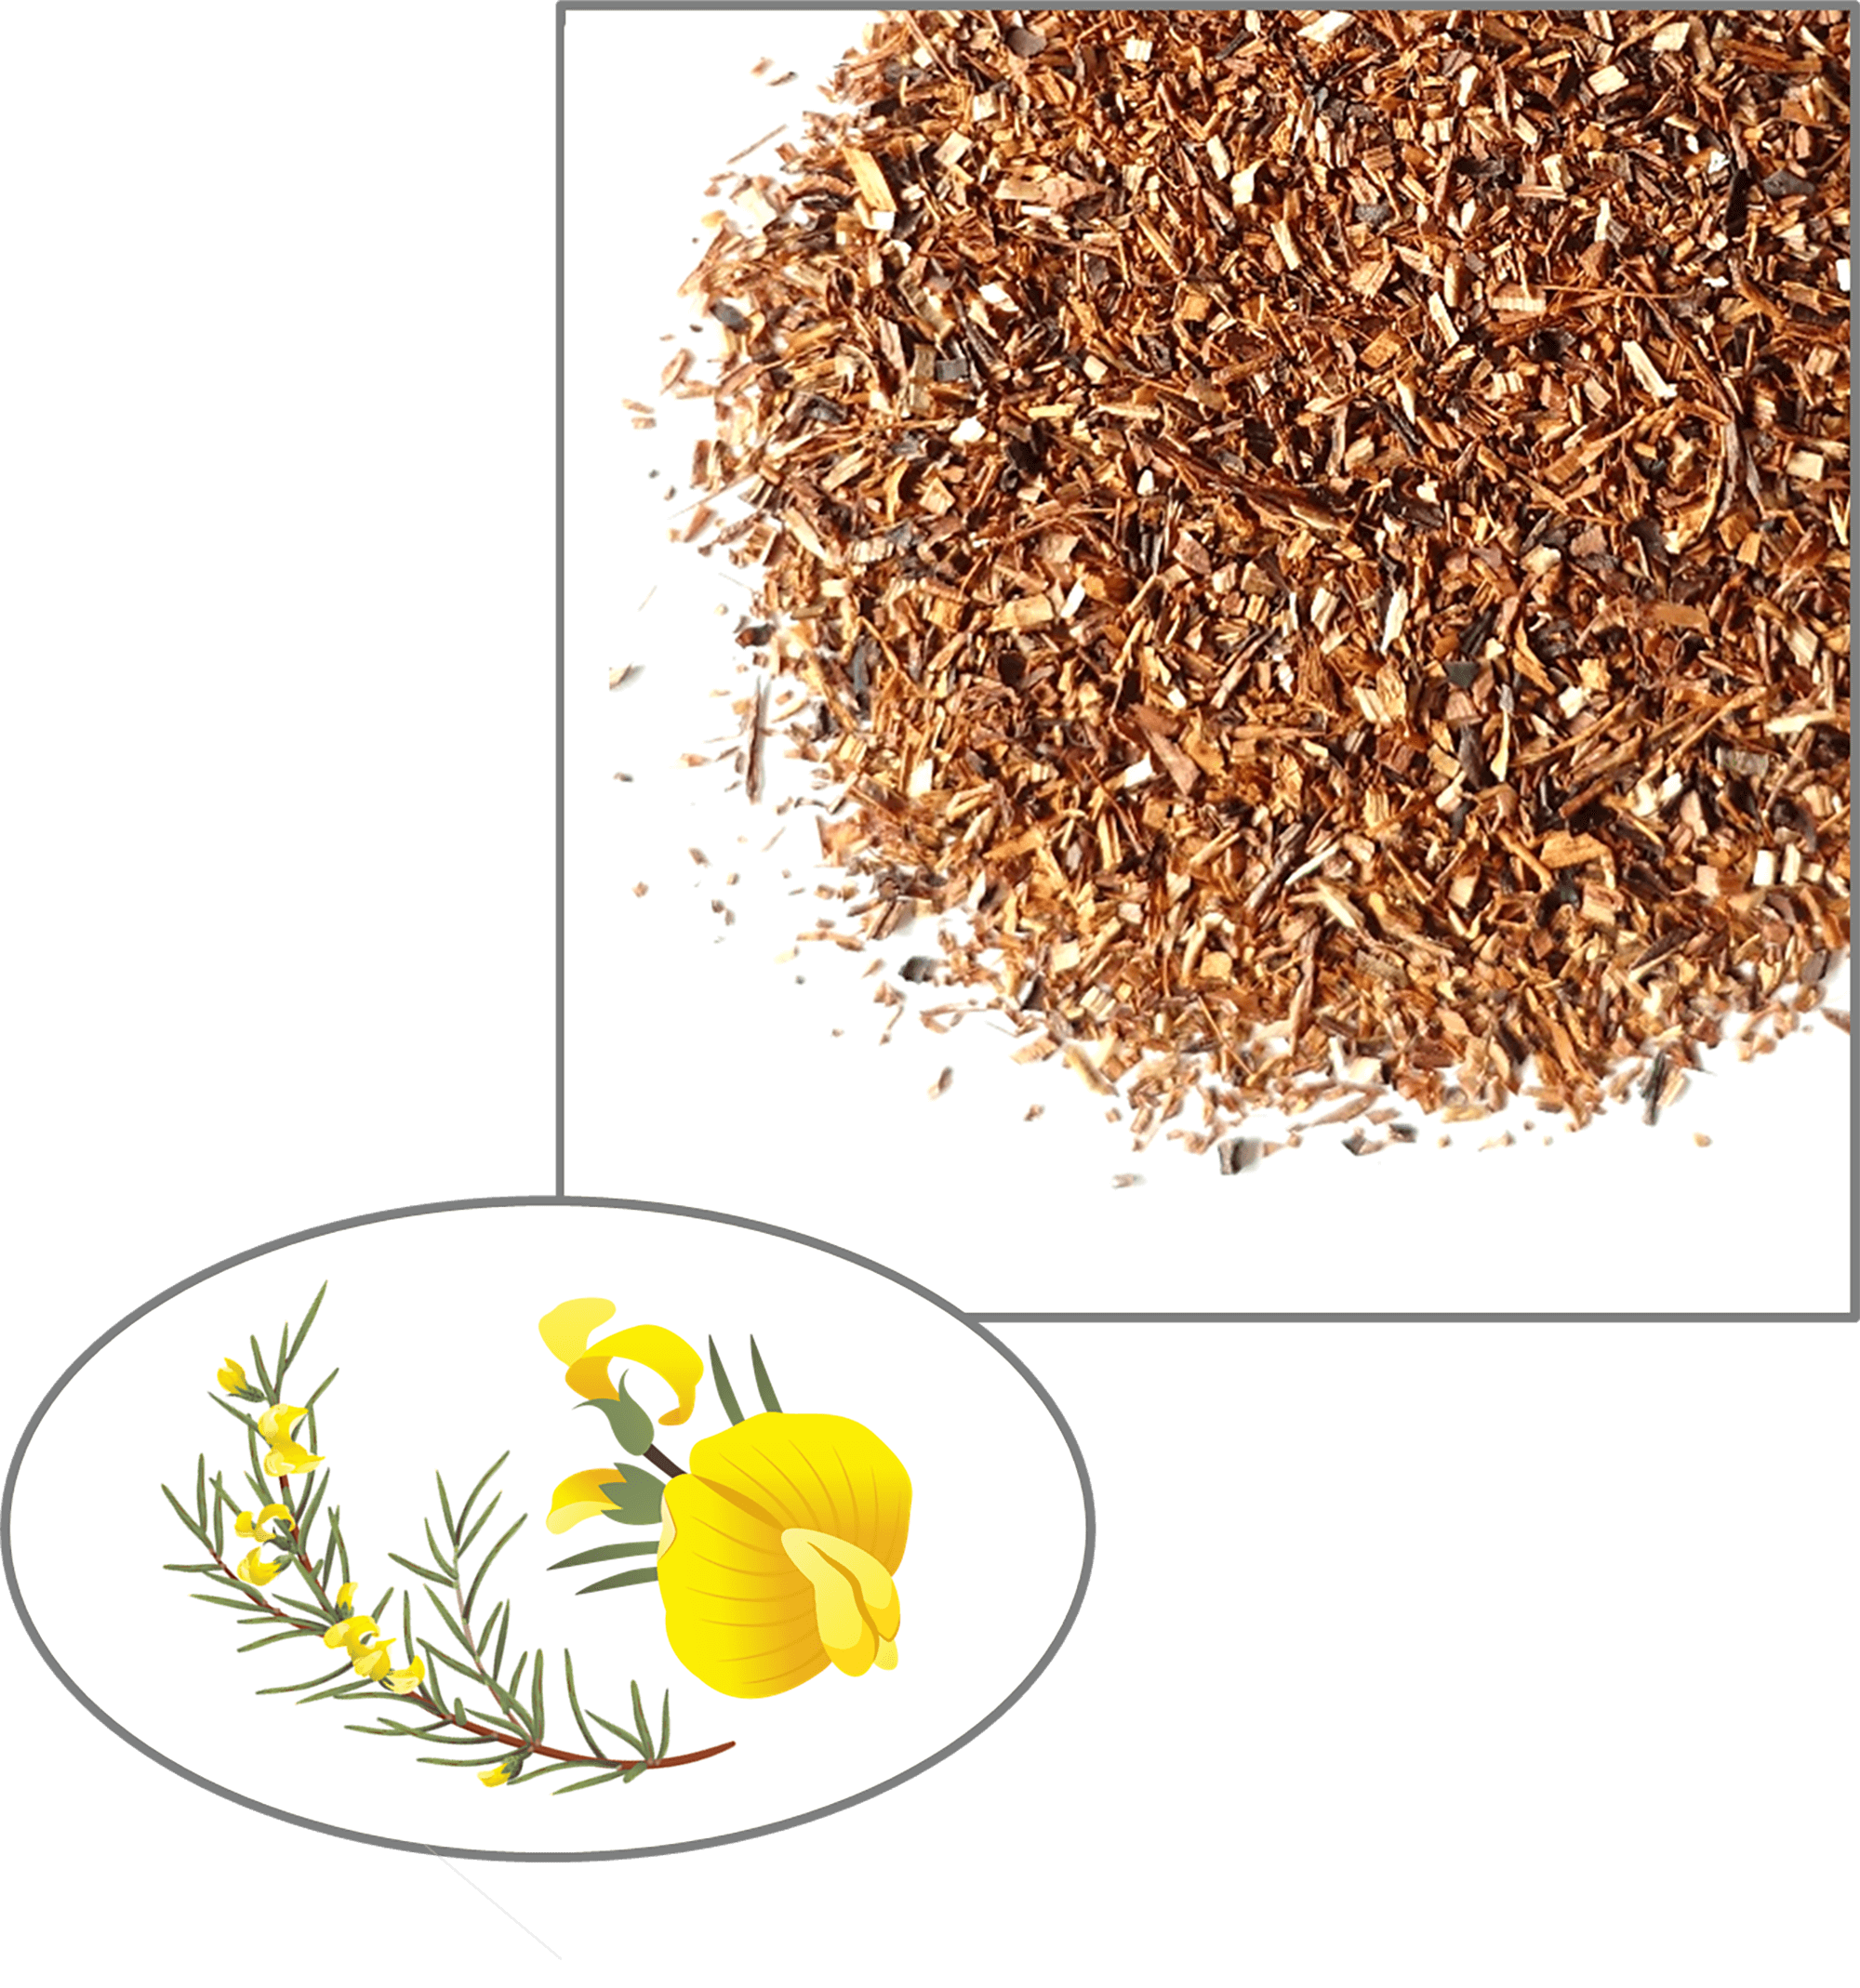 A golden orange and brown pile with flecks of white and brown tea leaves that makes up a pile of blended honeybush and rooibos teas, a sample of Cape De Hoop's Honeybush Blend Tea.